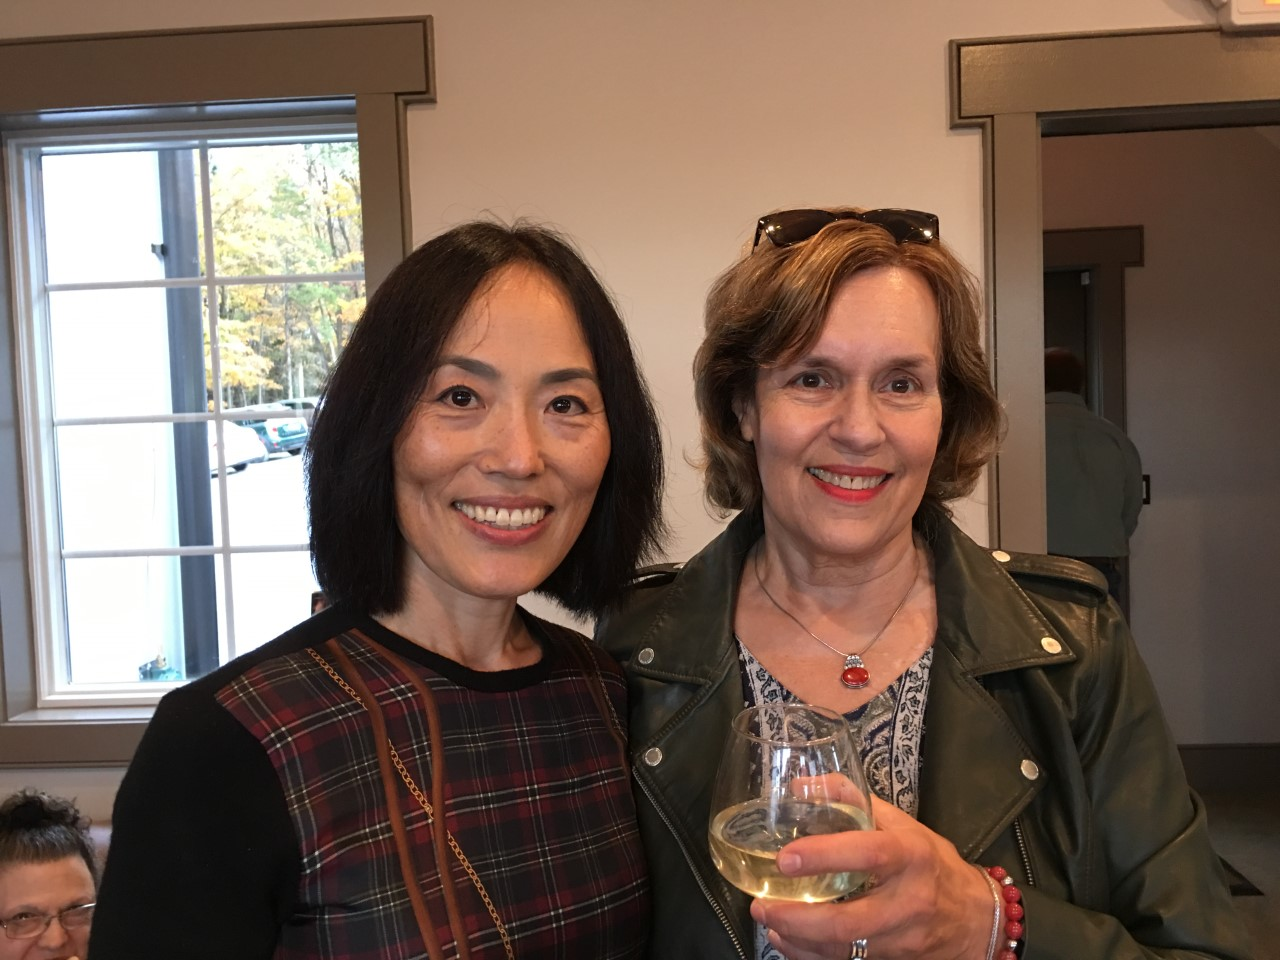 Sang Milea & Lorraine Gudas at the winery opening